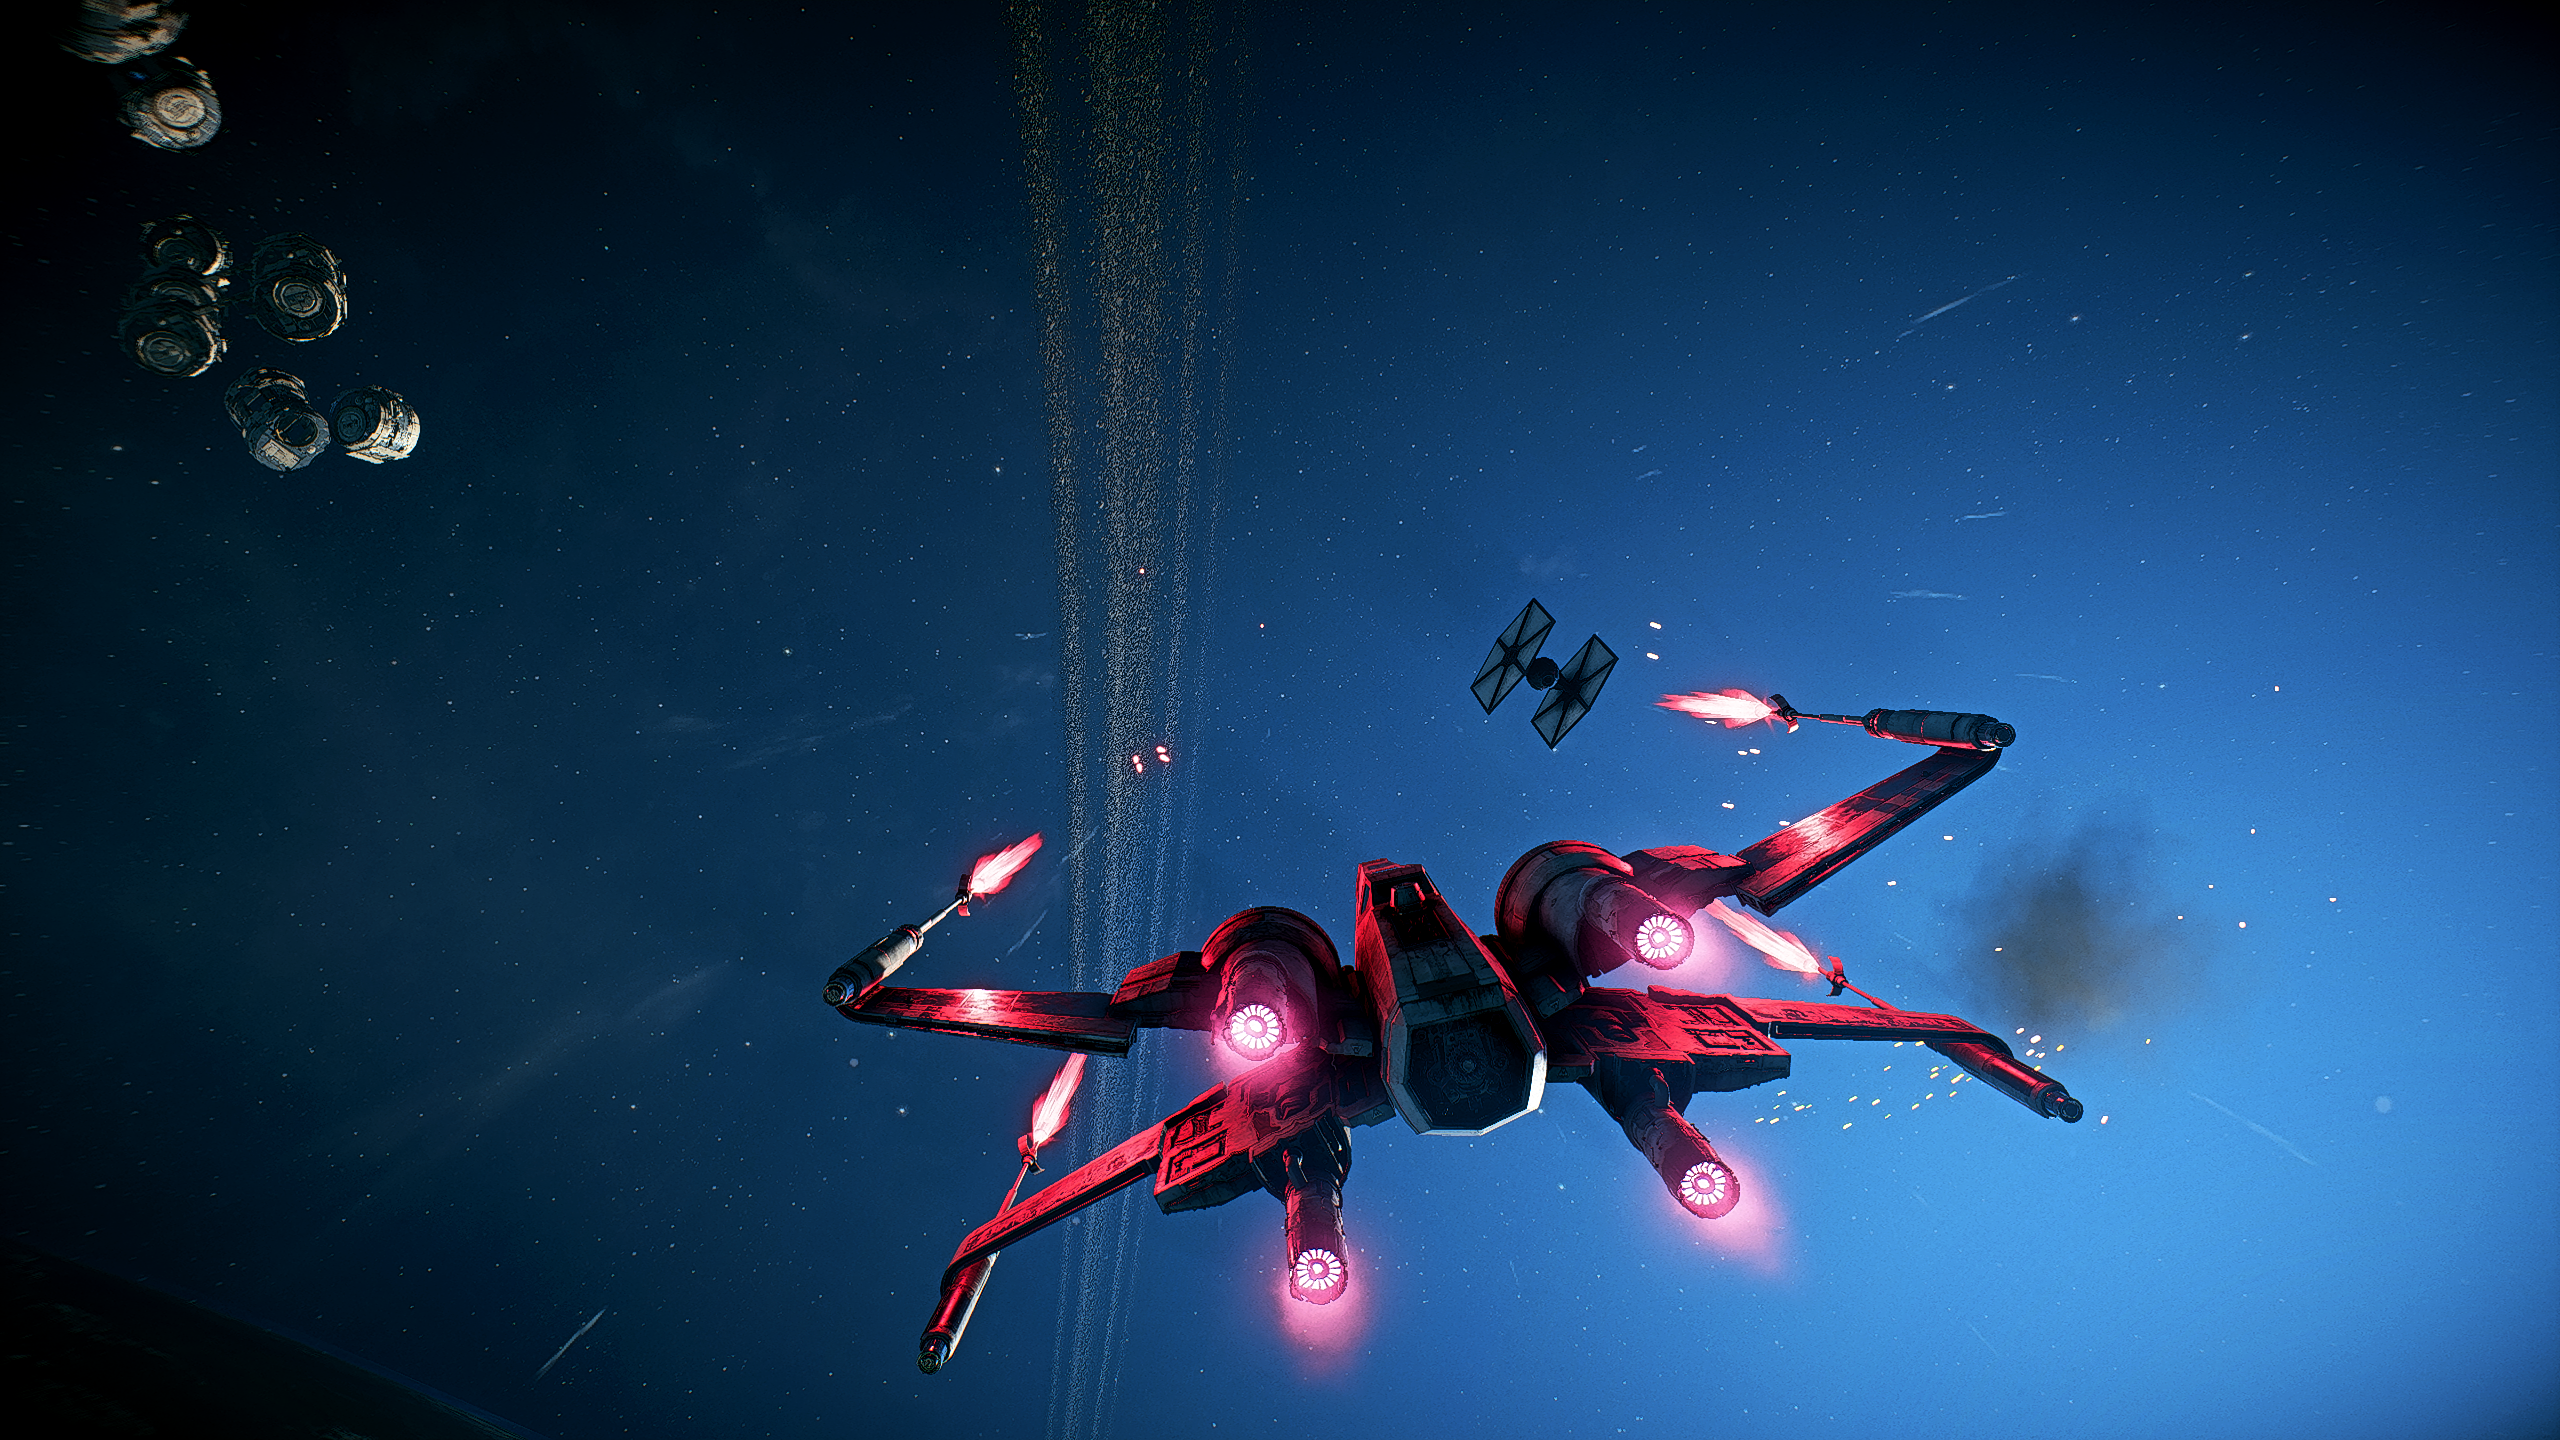 Star Wars Space X Wing 2560x1440